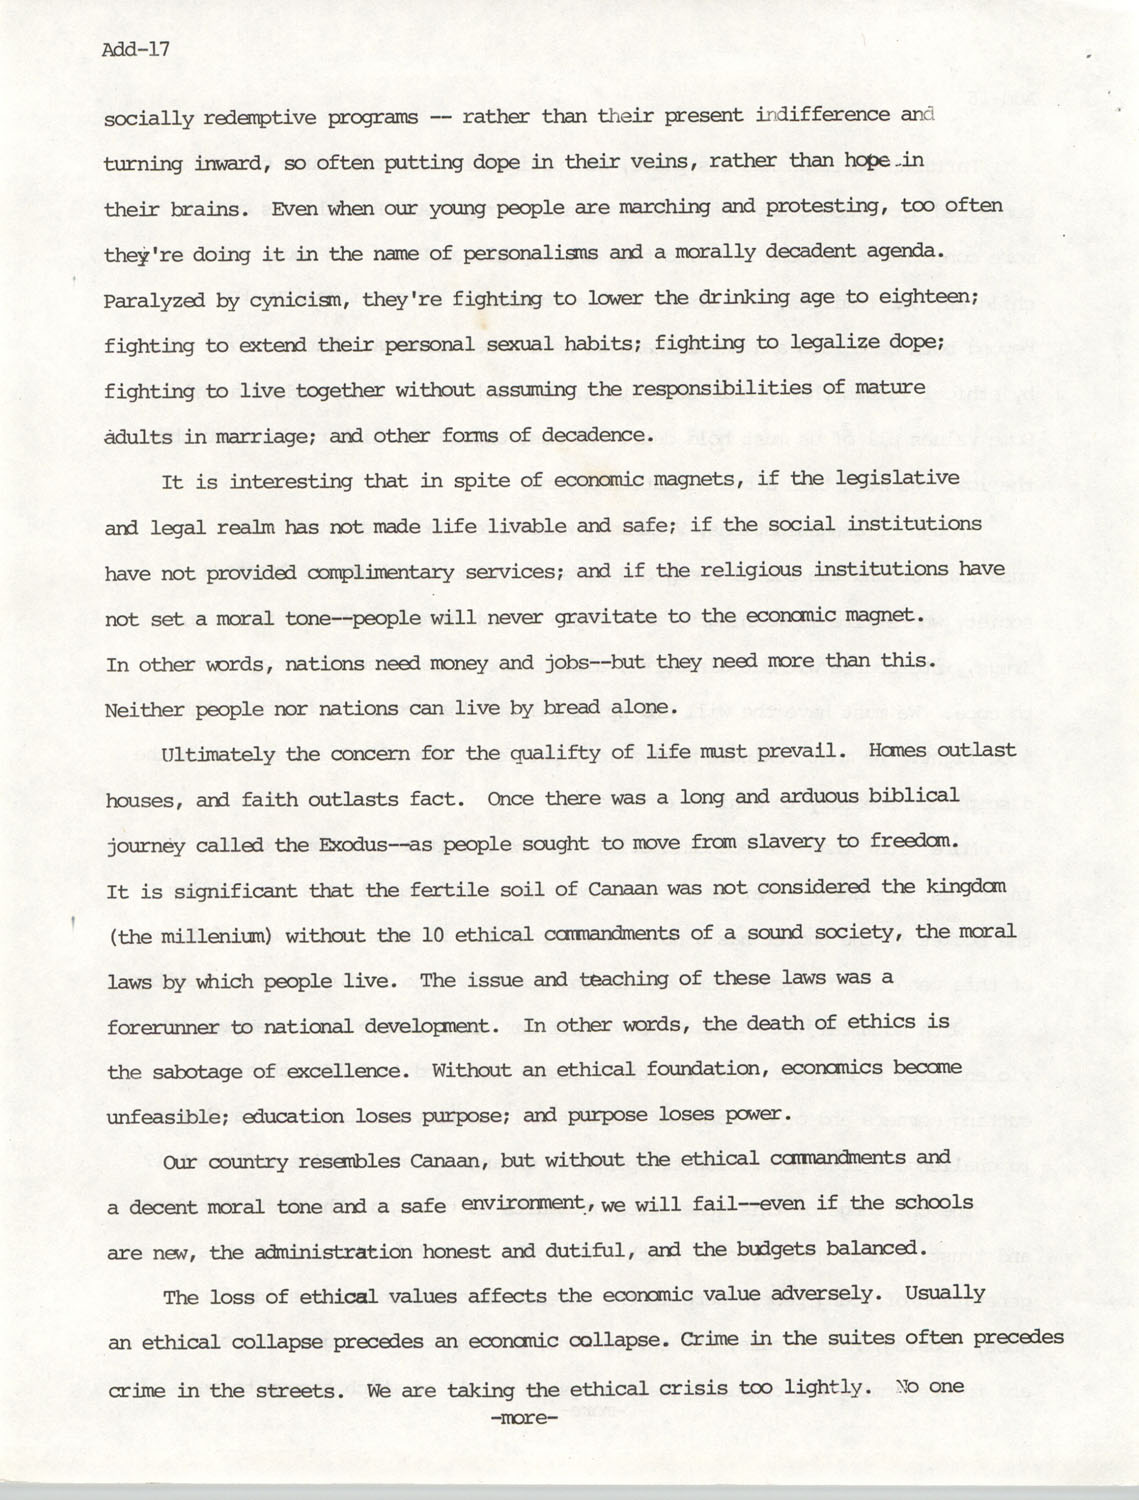 Speech Before the Republican National Committee, Page 17